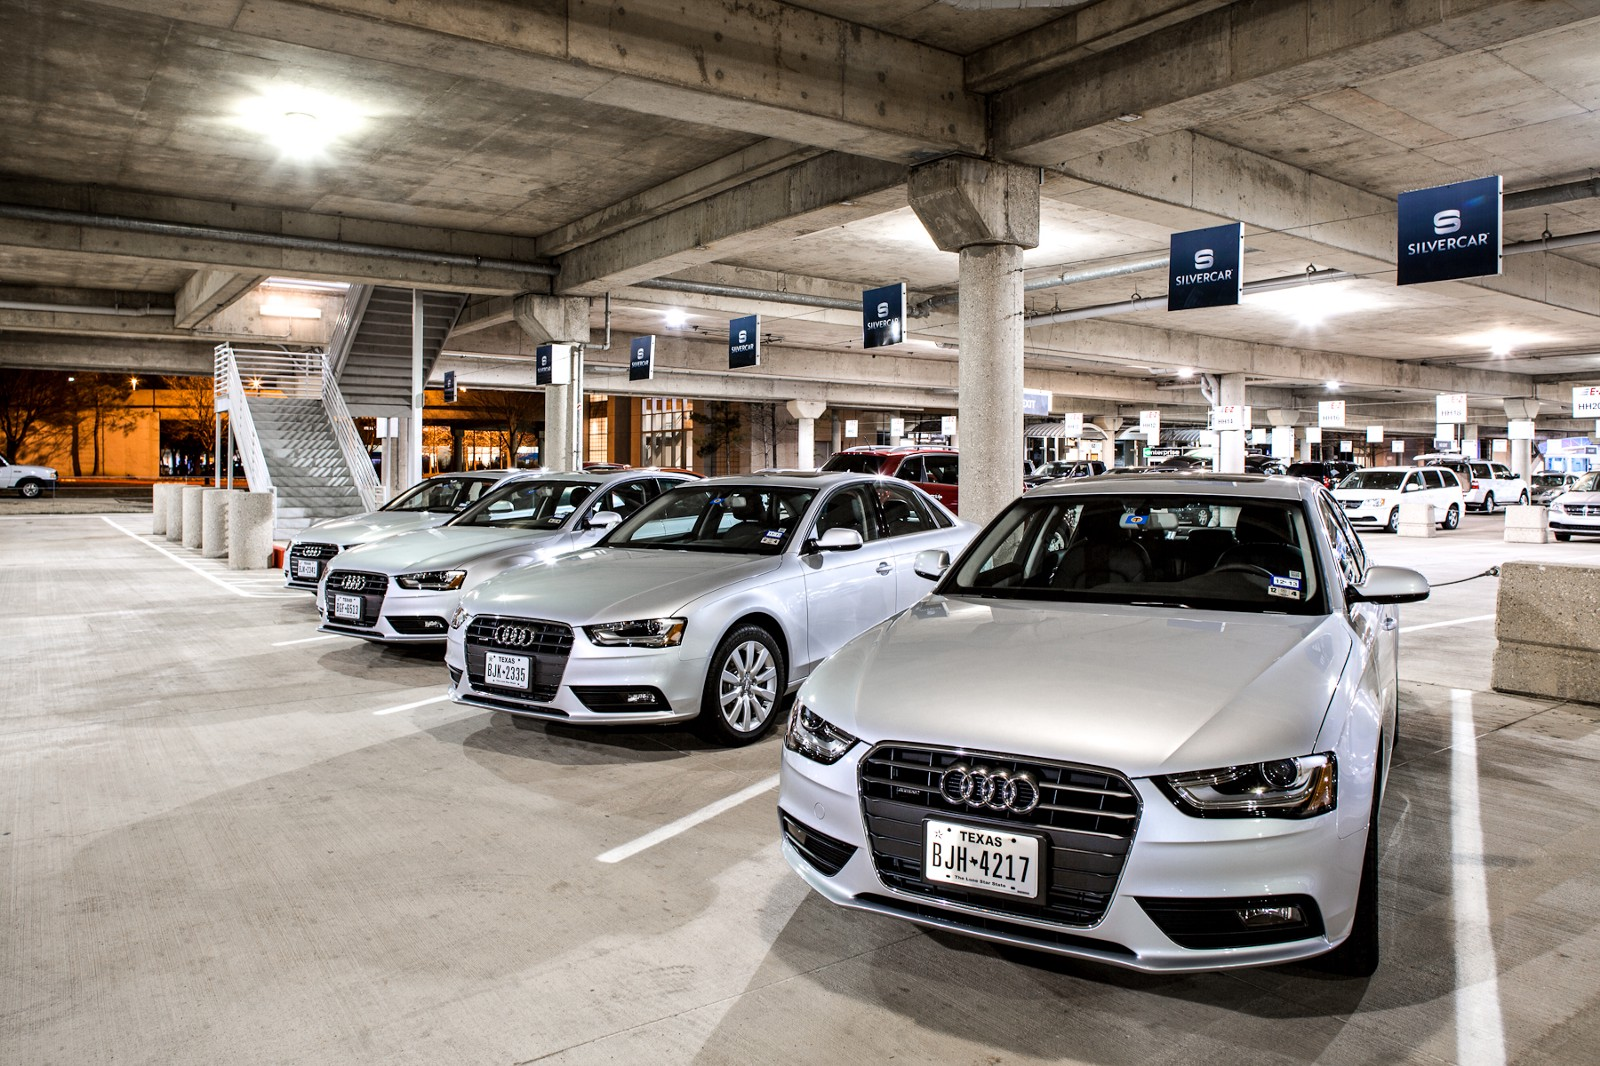 Audi Acquires Silvercar And Other News Mobiag - Audi silver car